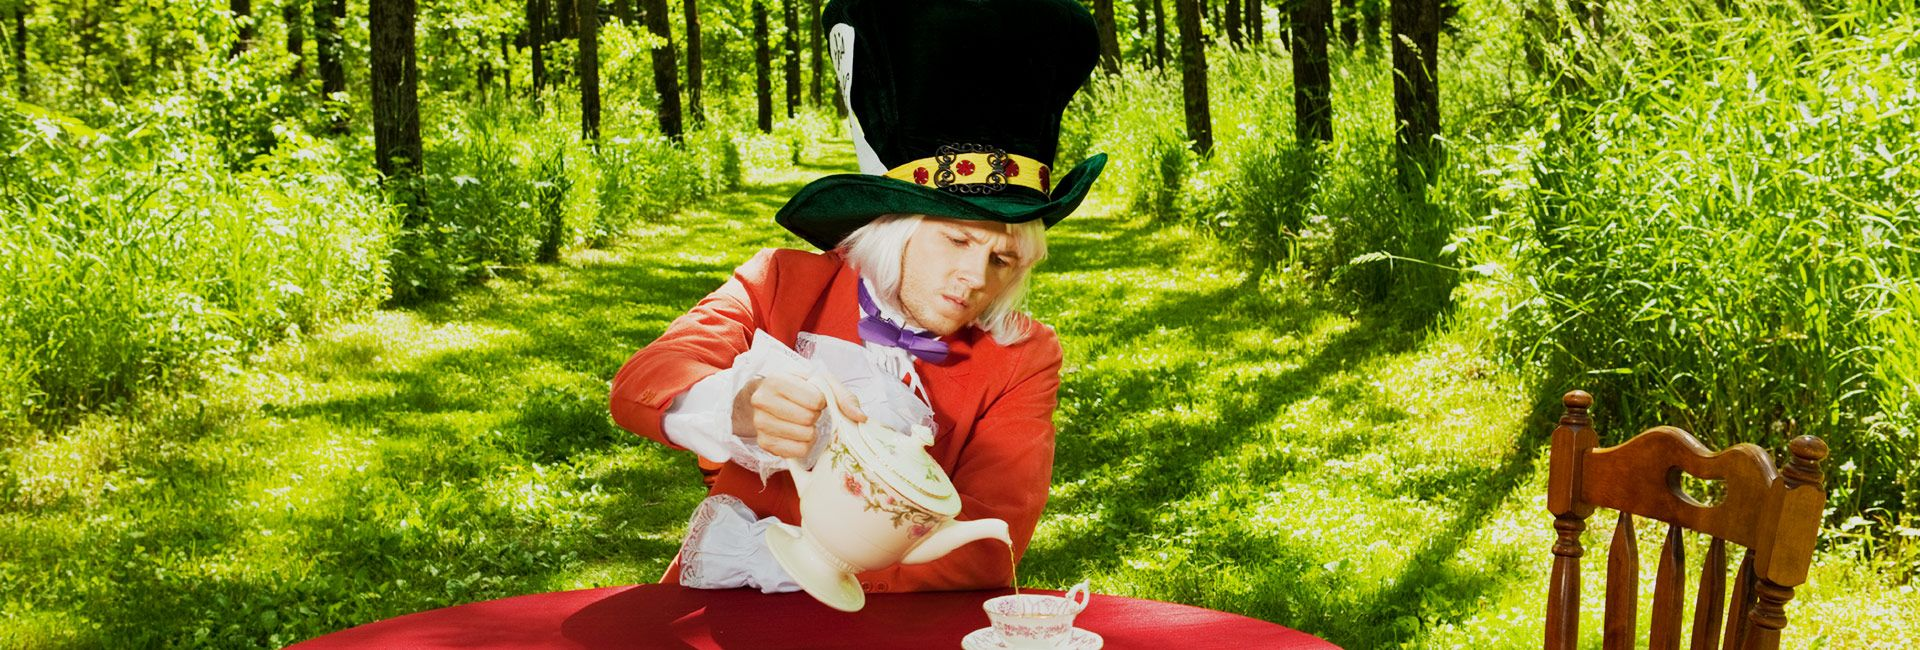 mad hatter tea party events